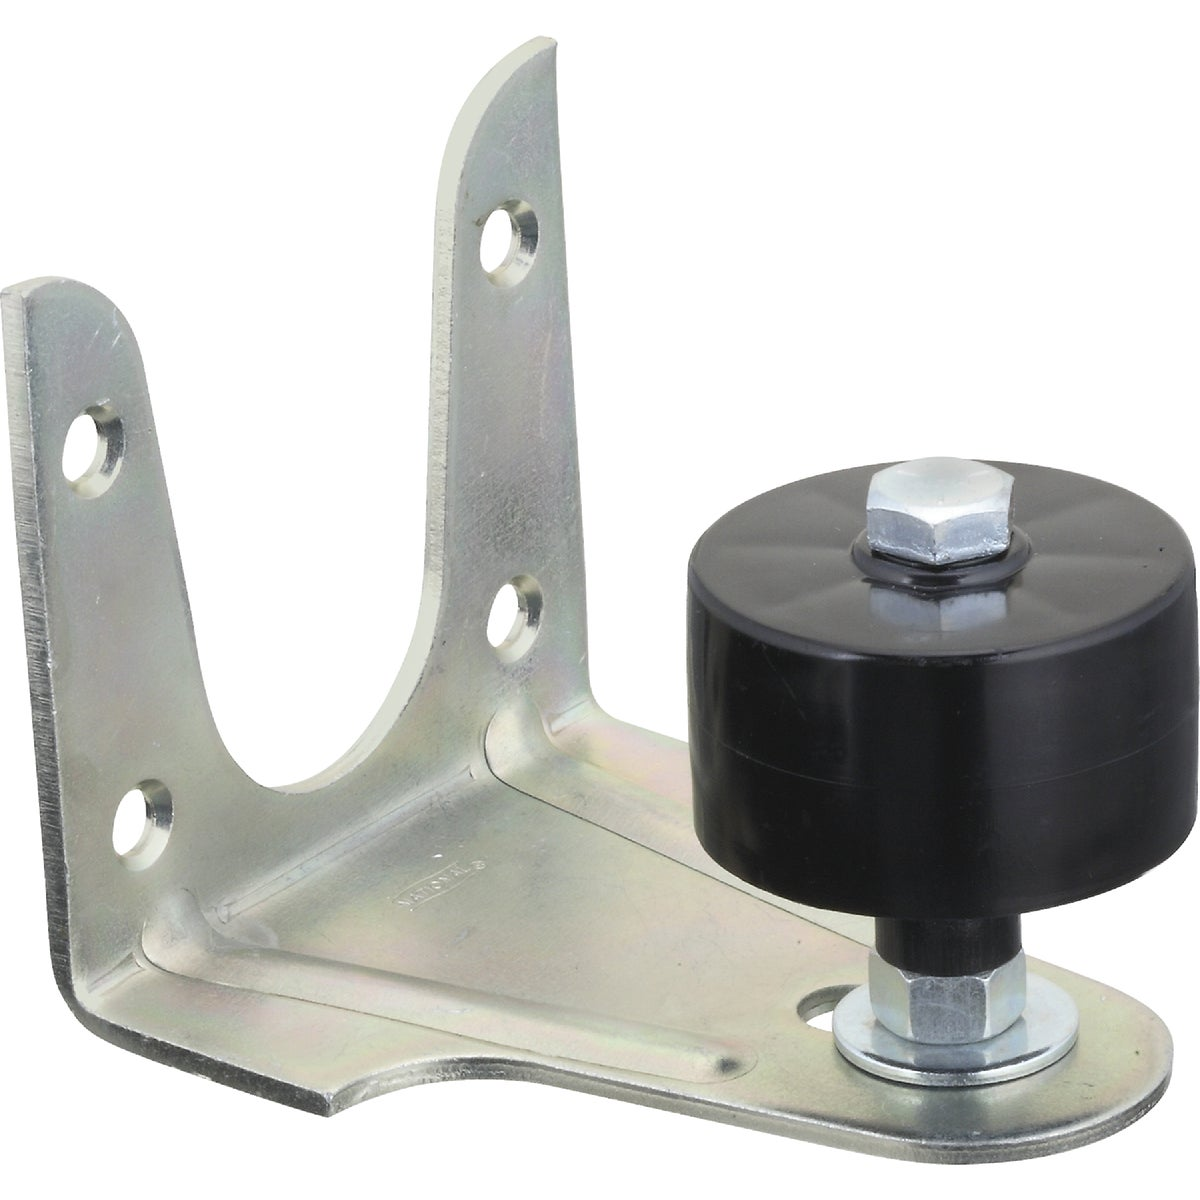 SIDE STAY ROLLER - N100875 by National Mfg Co